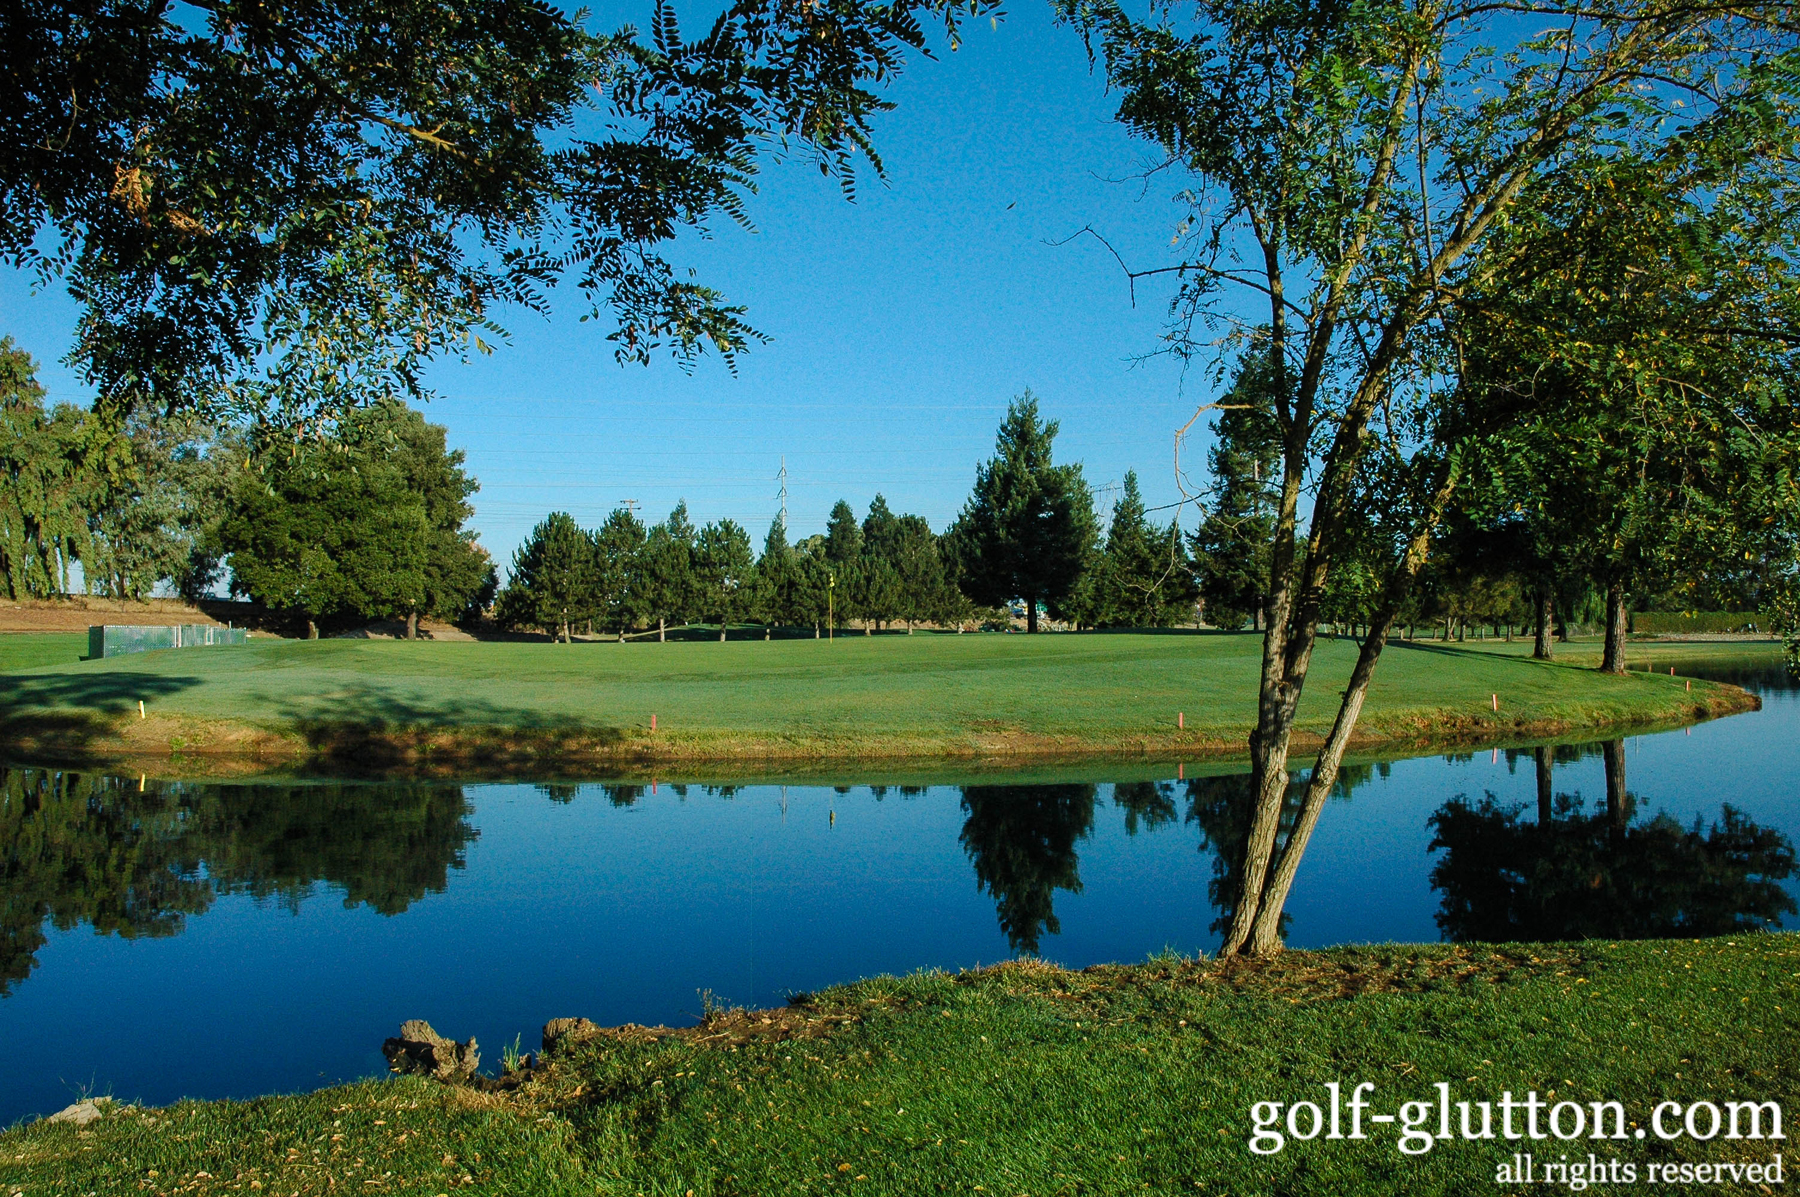 emerald lakes golf course review golfglutton. Black Bedroom Furniture Sets. Home Design Ideas